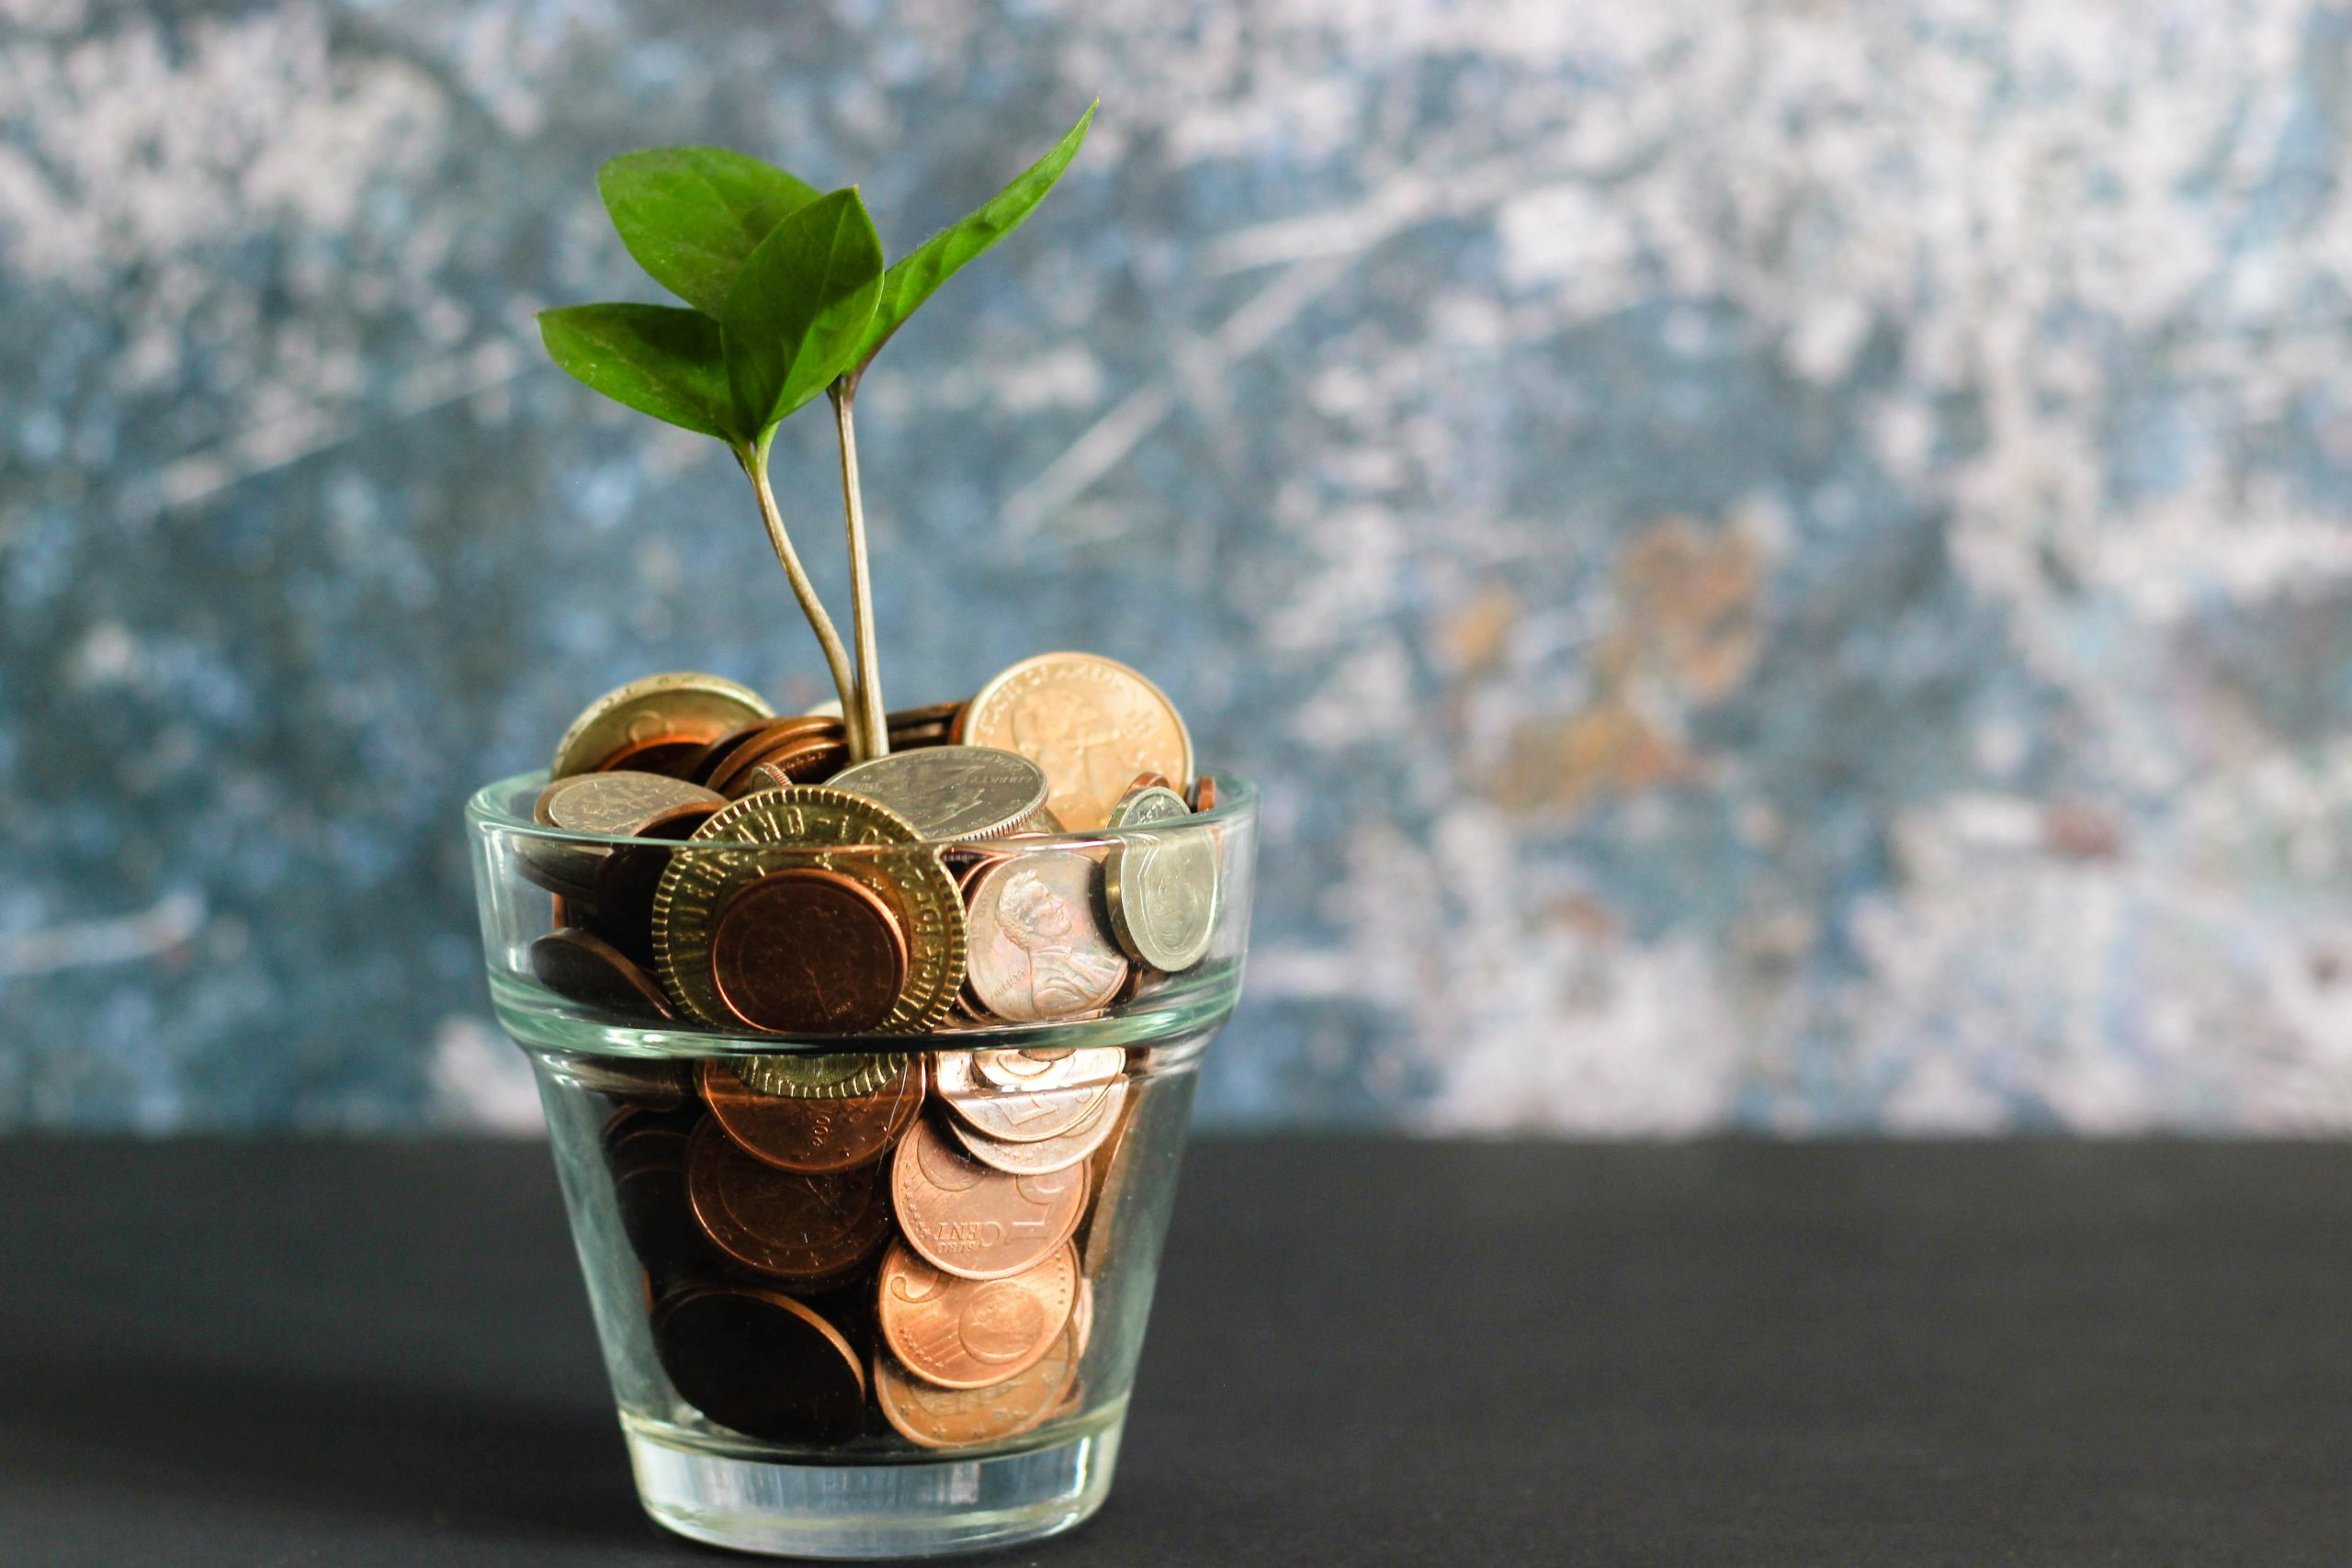 coins in a glass with plant coming out of the top